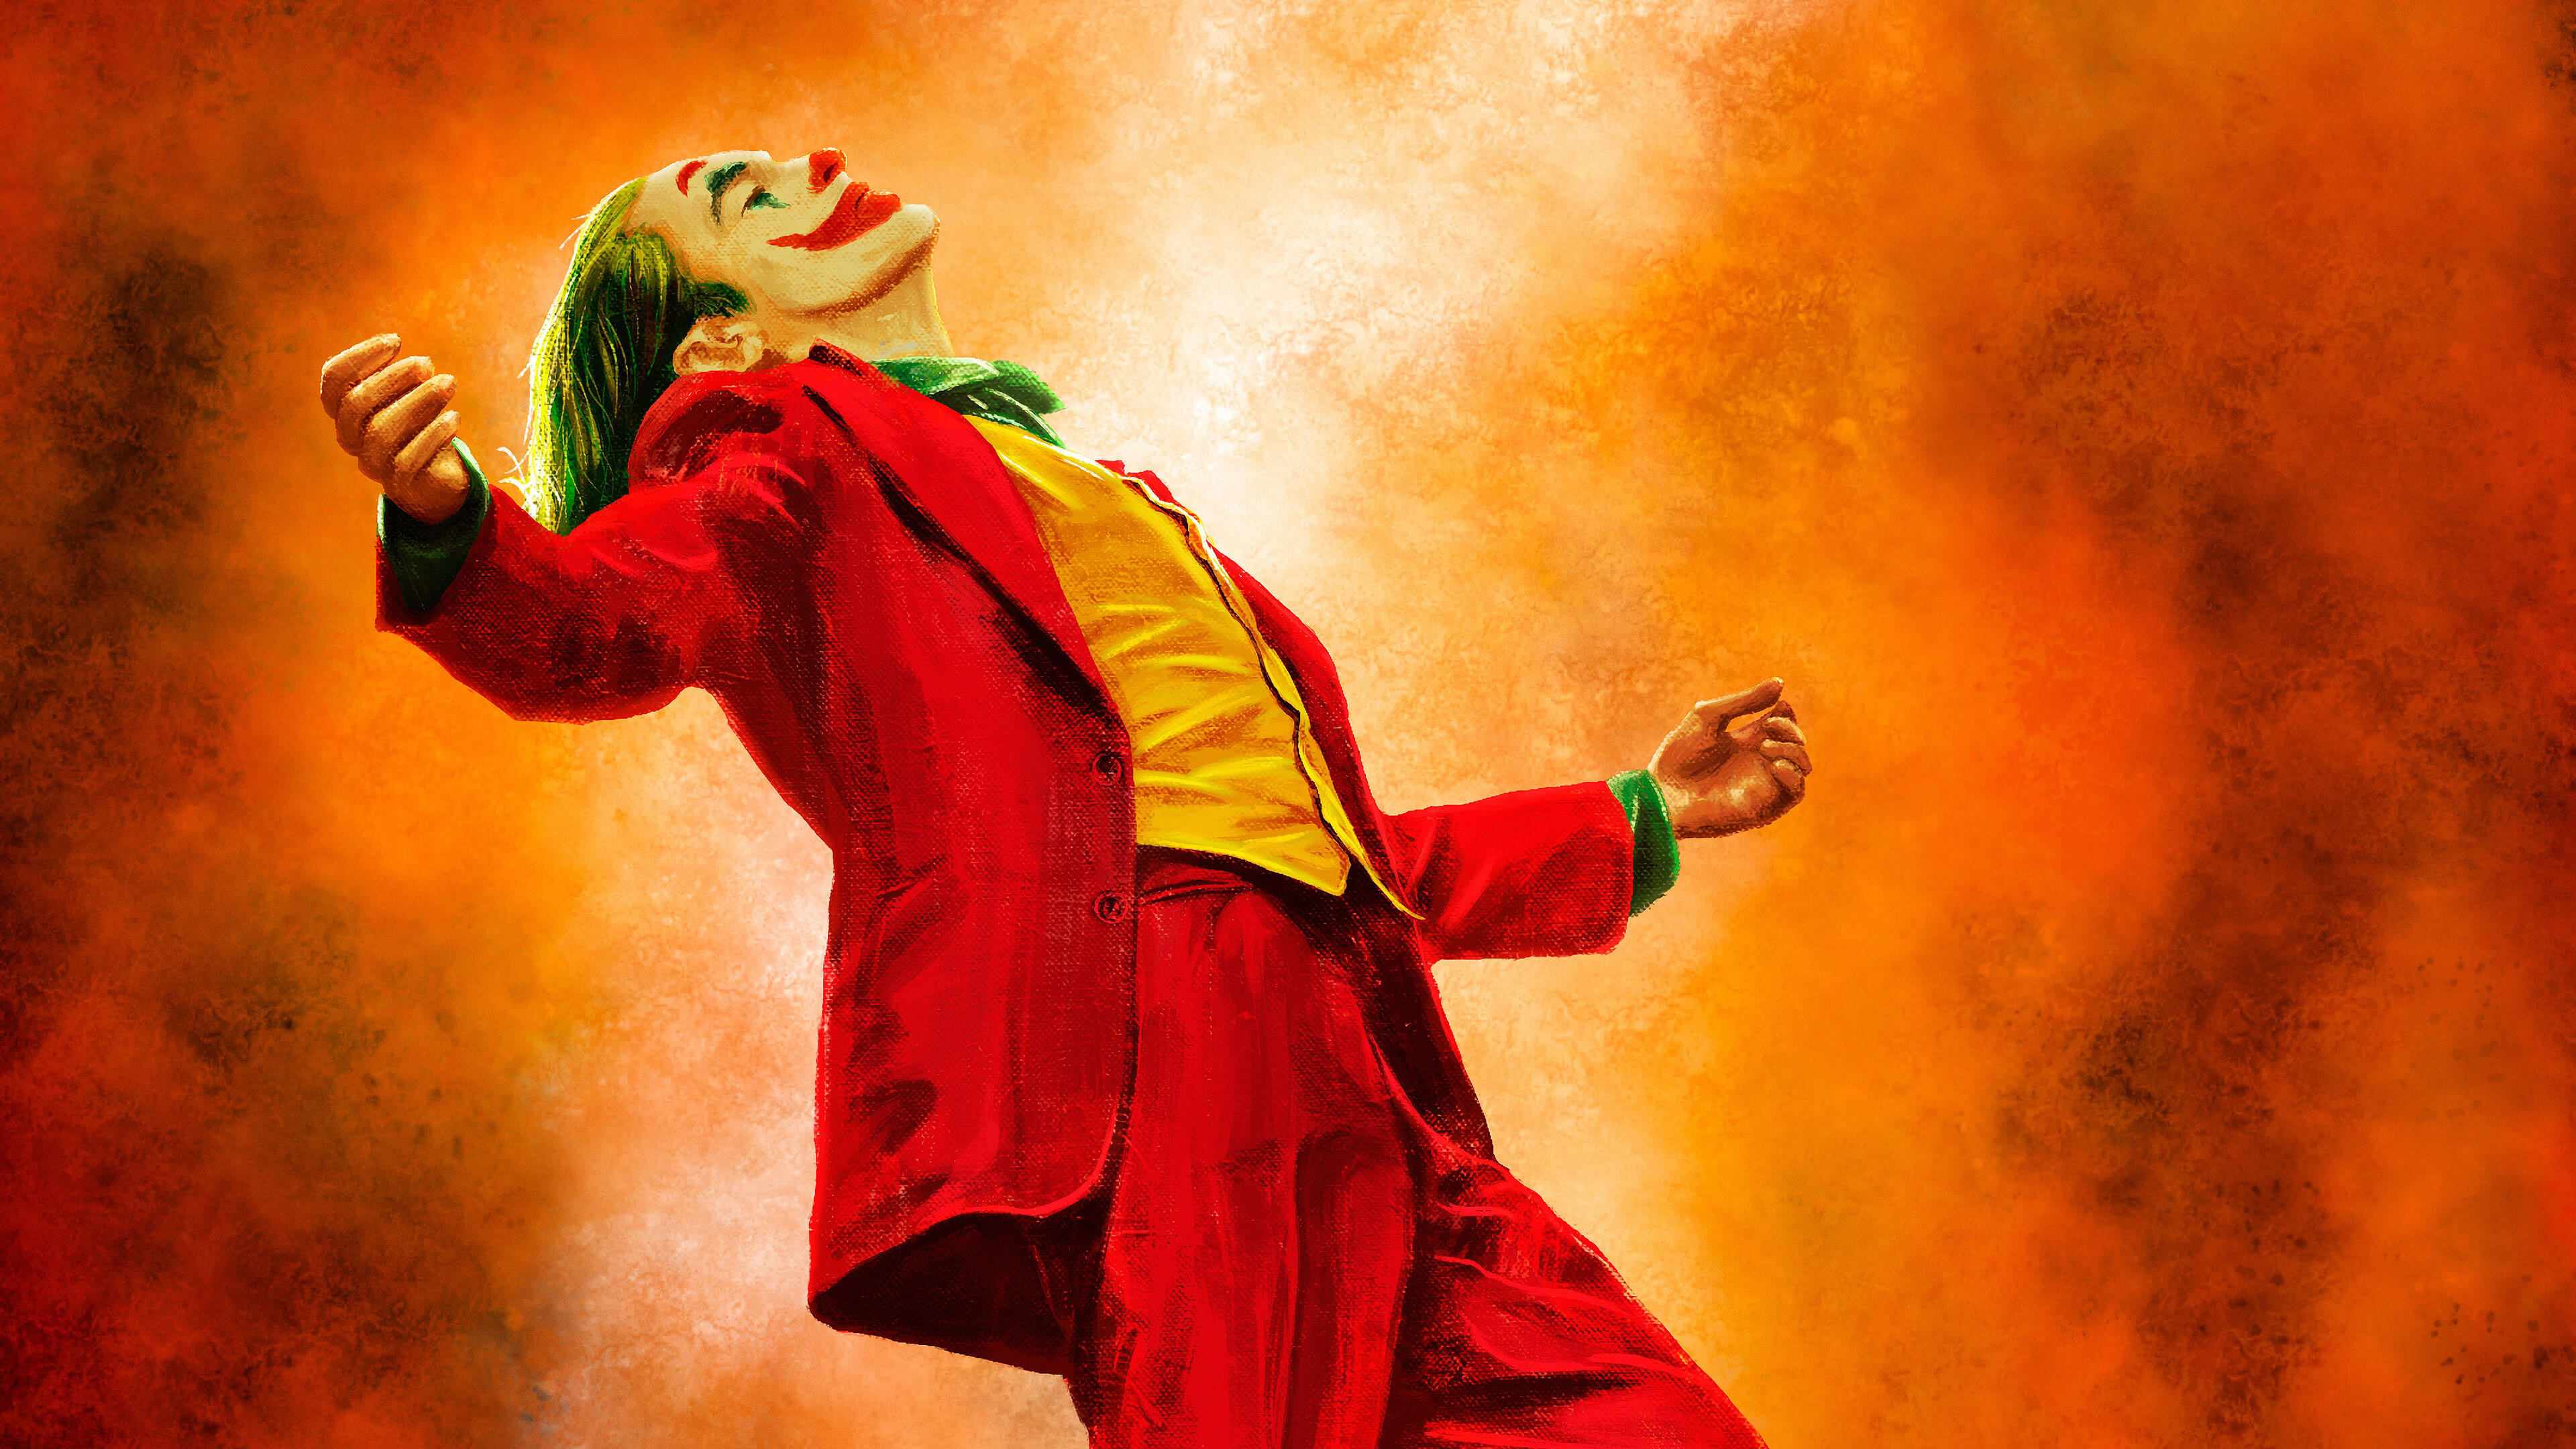 joker joaquin phoenix painting uhd 4k wallpaper